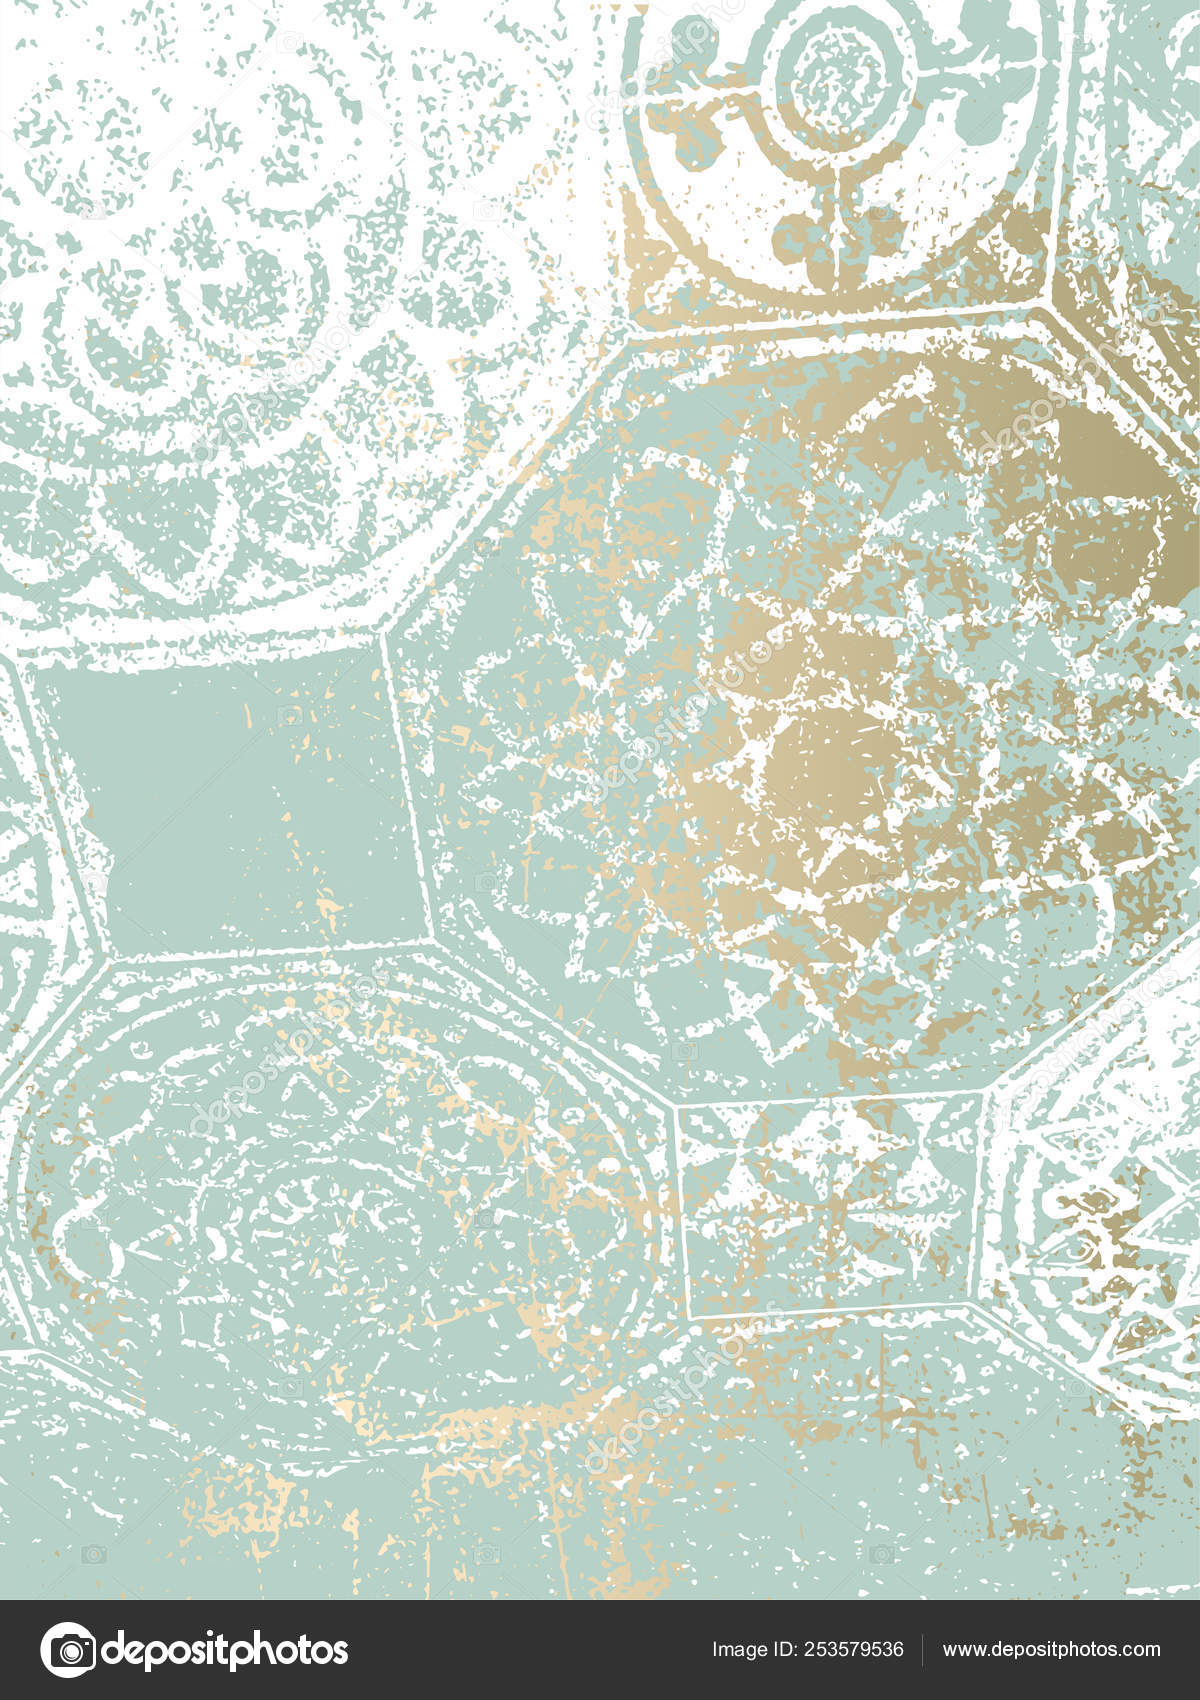 Arabesque Motifs Vintage Gold Pastel Paint Patina Tile Stock Vector Anna Sokol 253579536